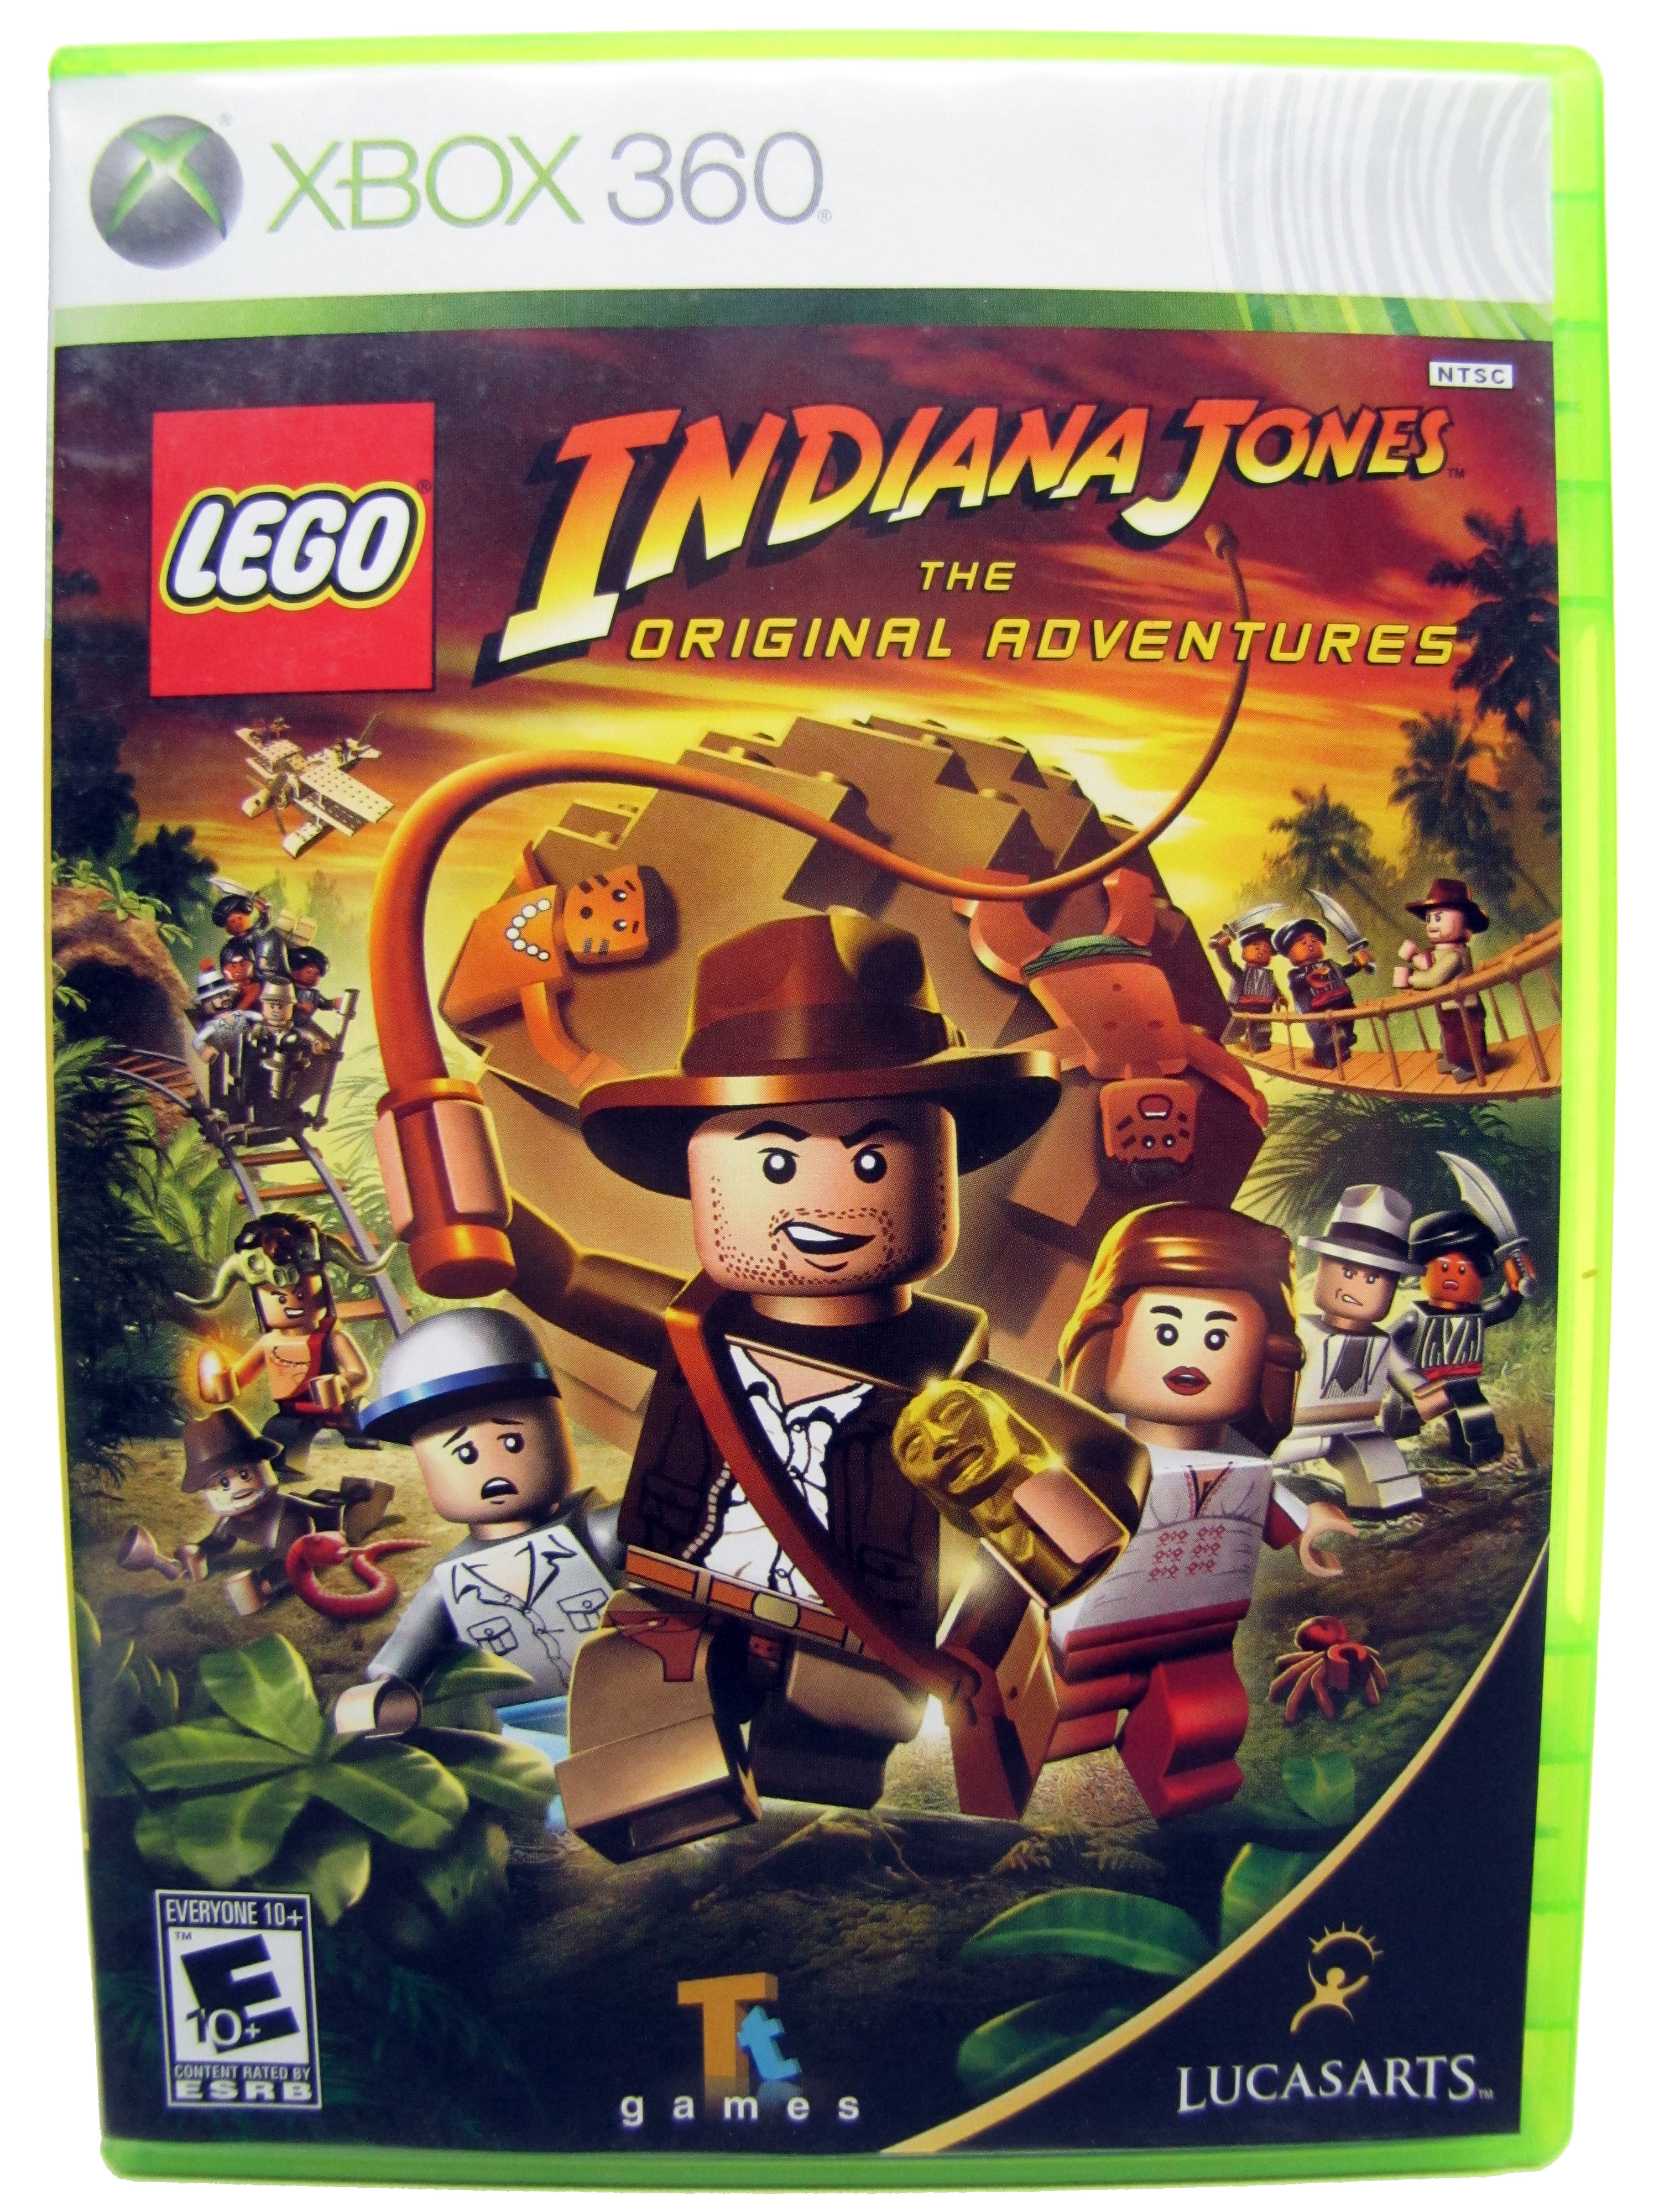 XBOX 360 LEGO Indiana Jones Original Adventures Complete - 2008